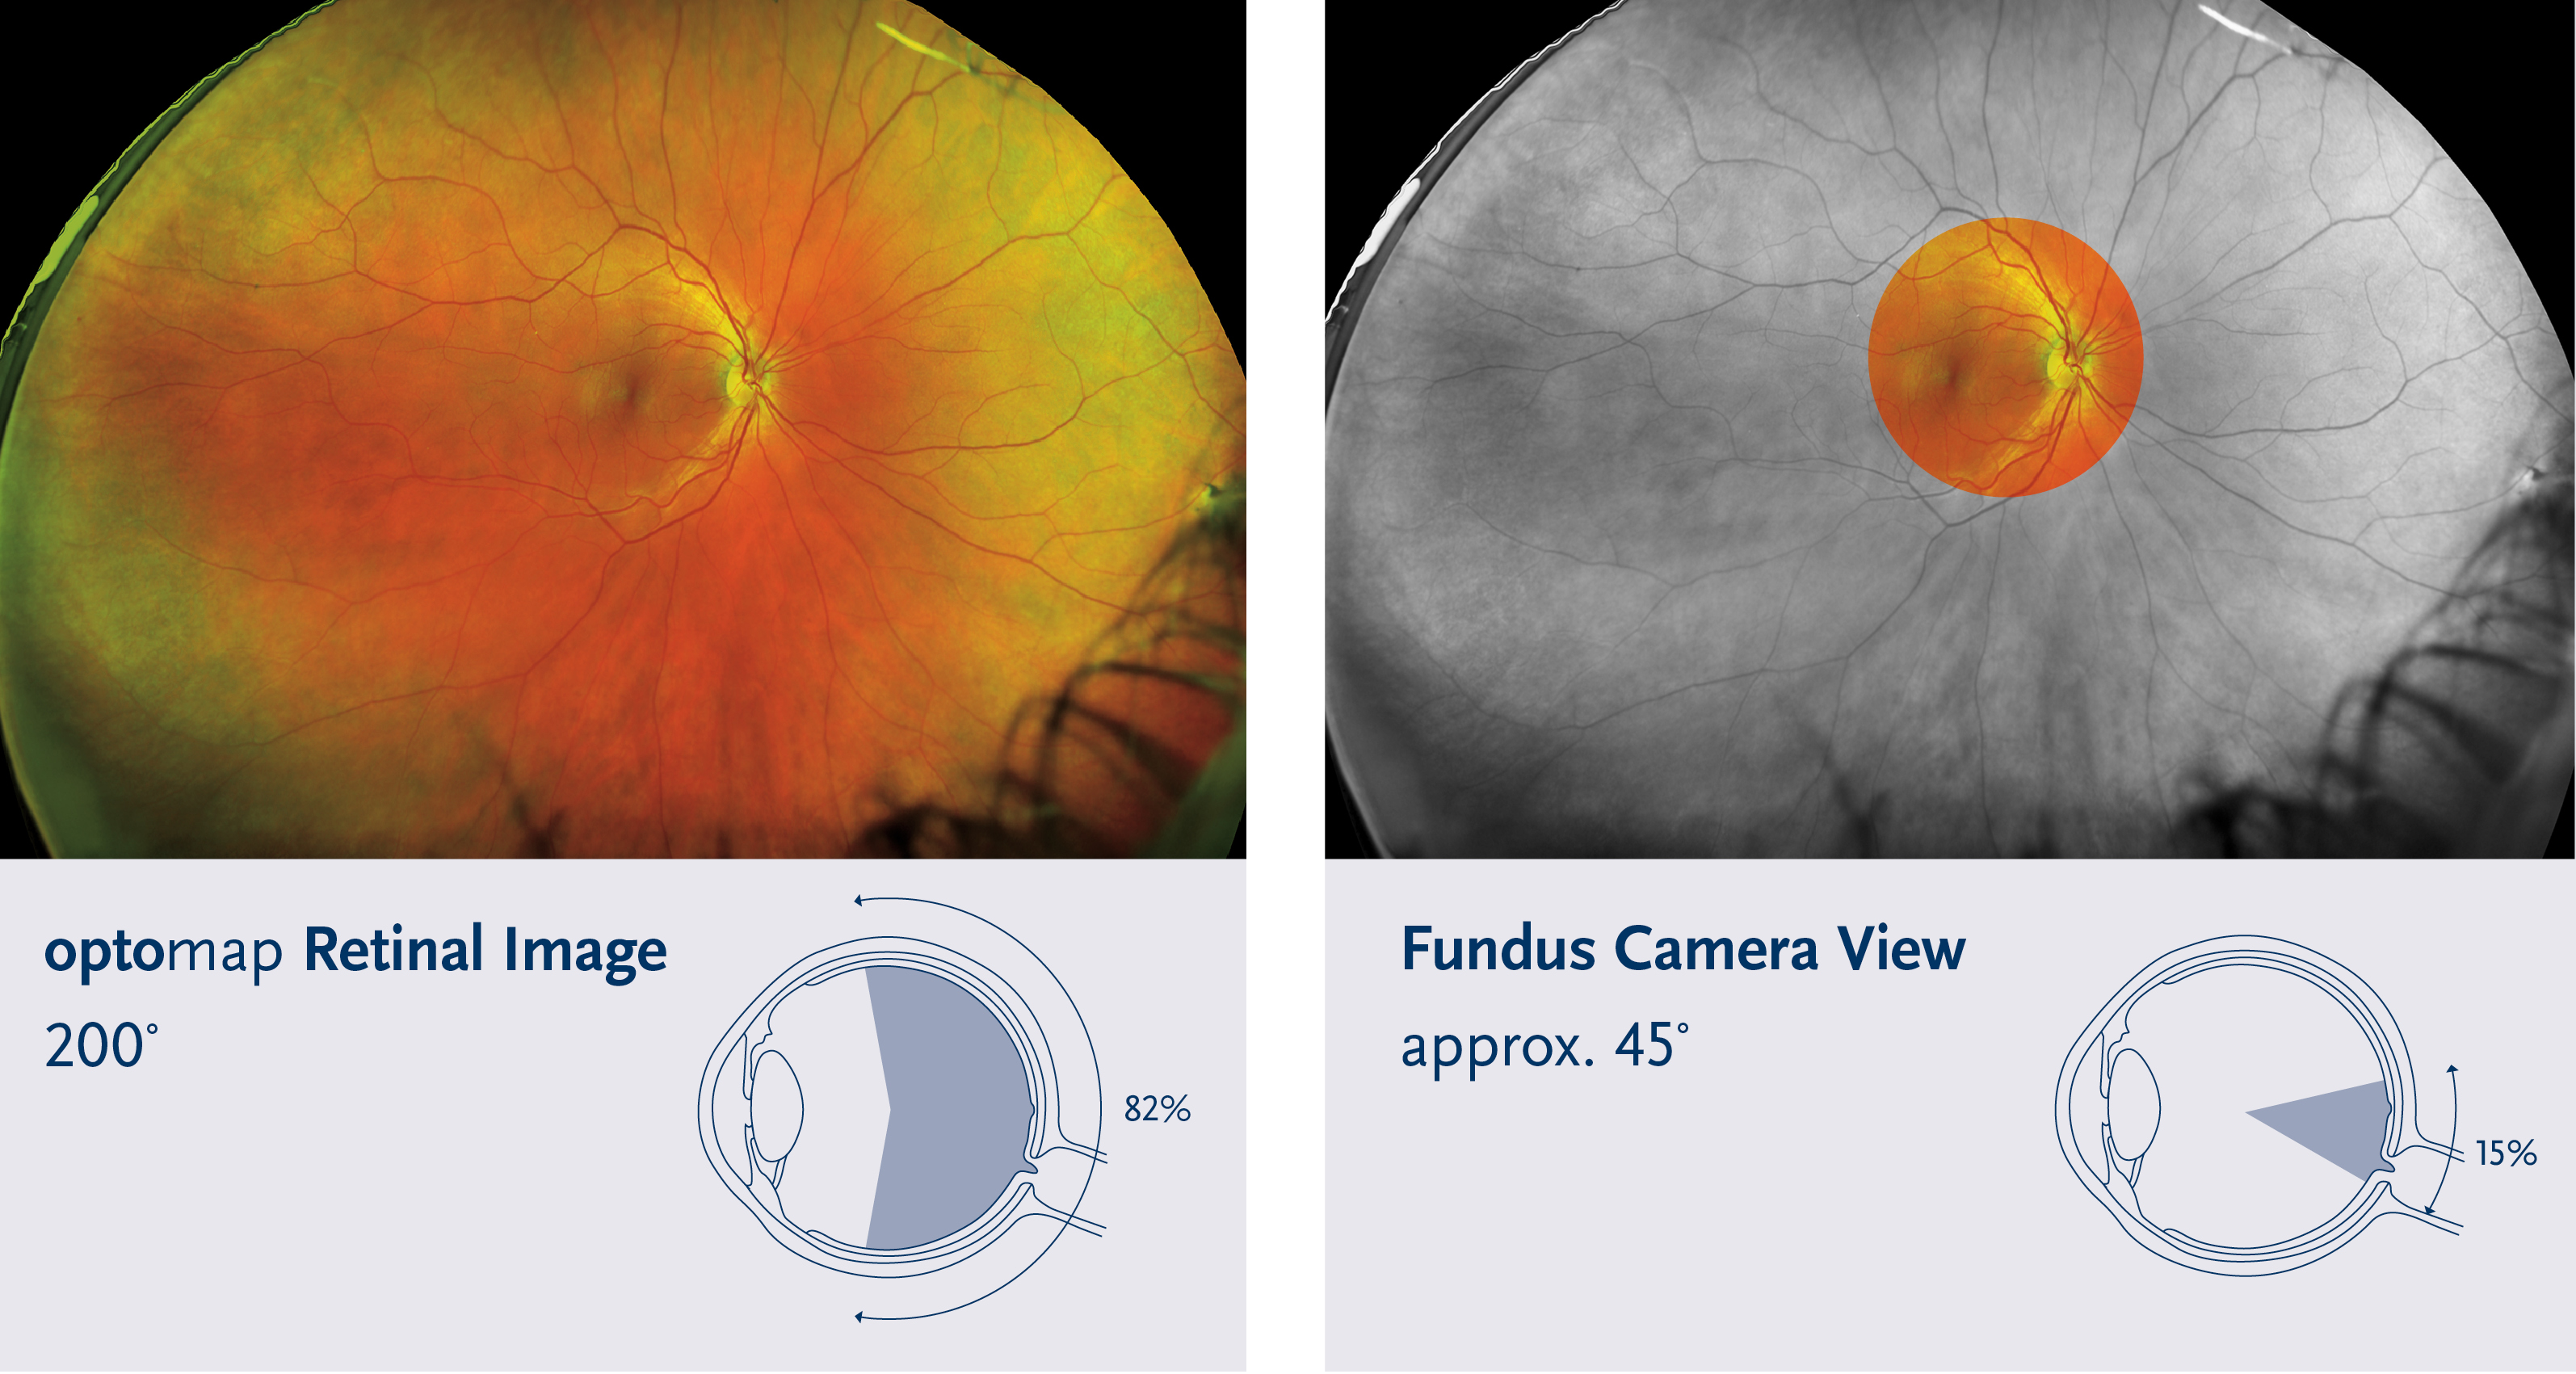 comparison between an optomap and traditional retinal imaging machine